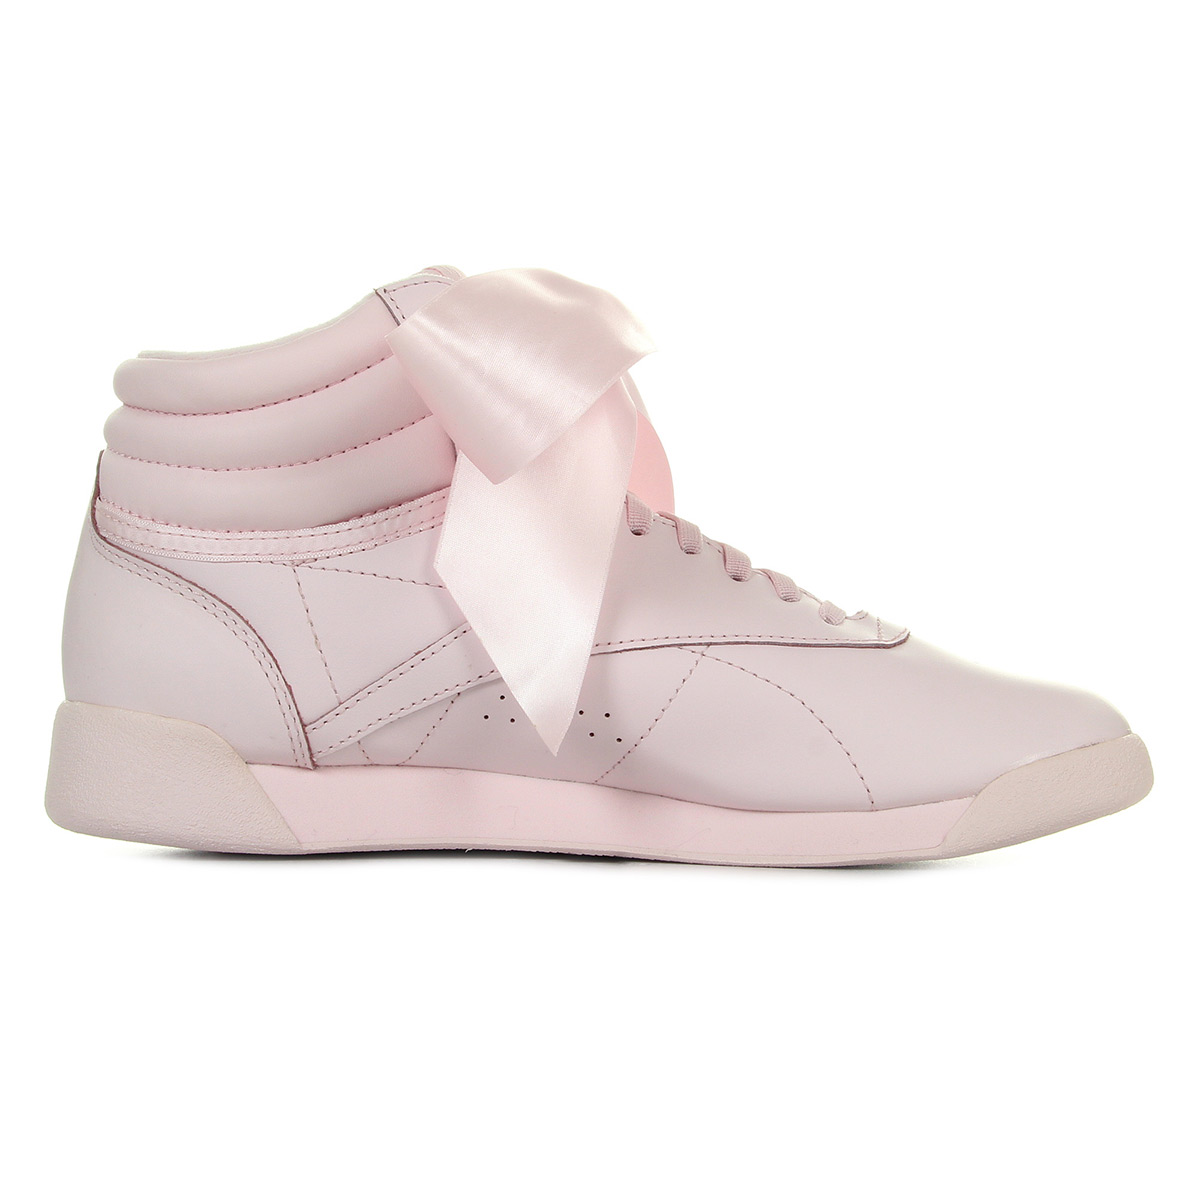 9c548be92b081 Chaussures Baskets Reebok femme F S Hi Satin Bow taille Rose Cuir ...